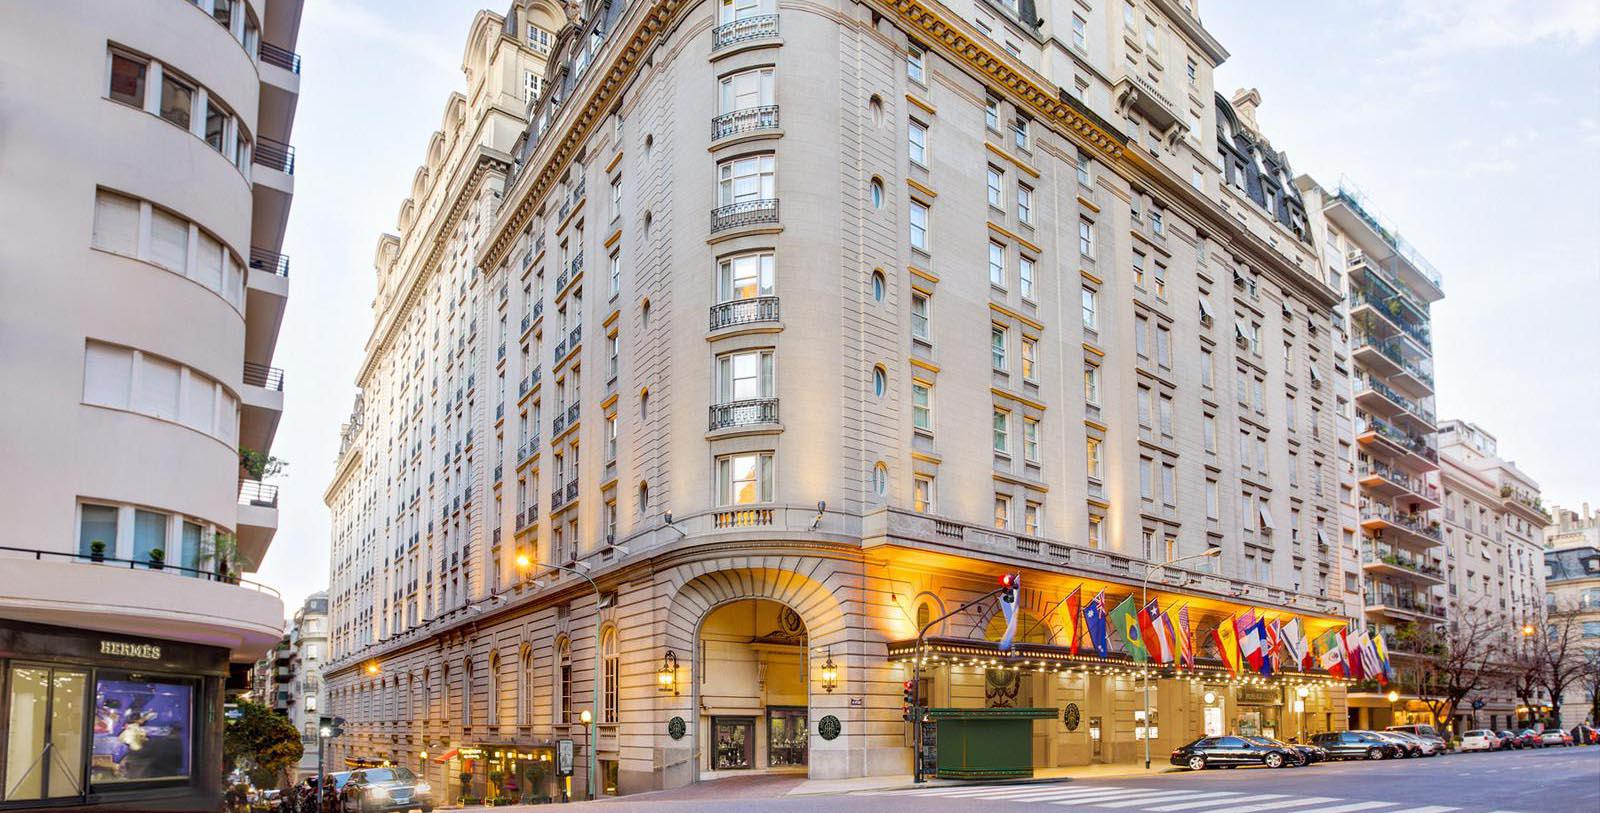 Image of hotel exterior Alvear Palace Hotel, 1932, Member of Historic Hotels Worldwide, in Buenos Aires, Argentina, Overview